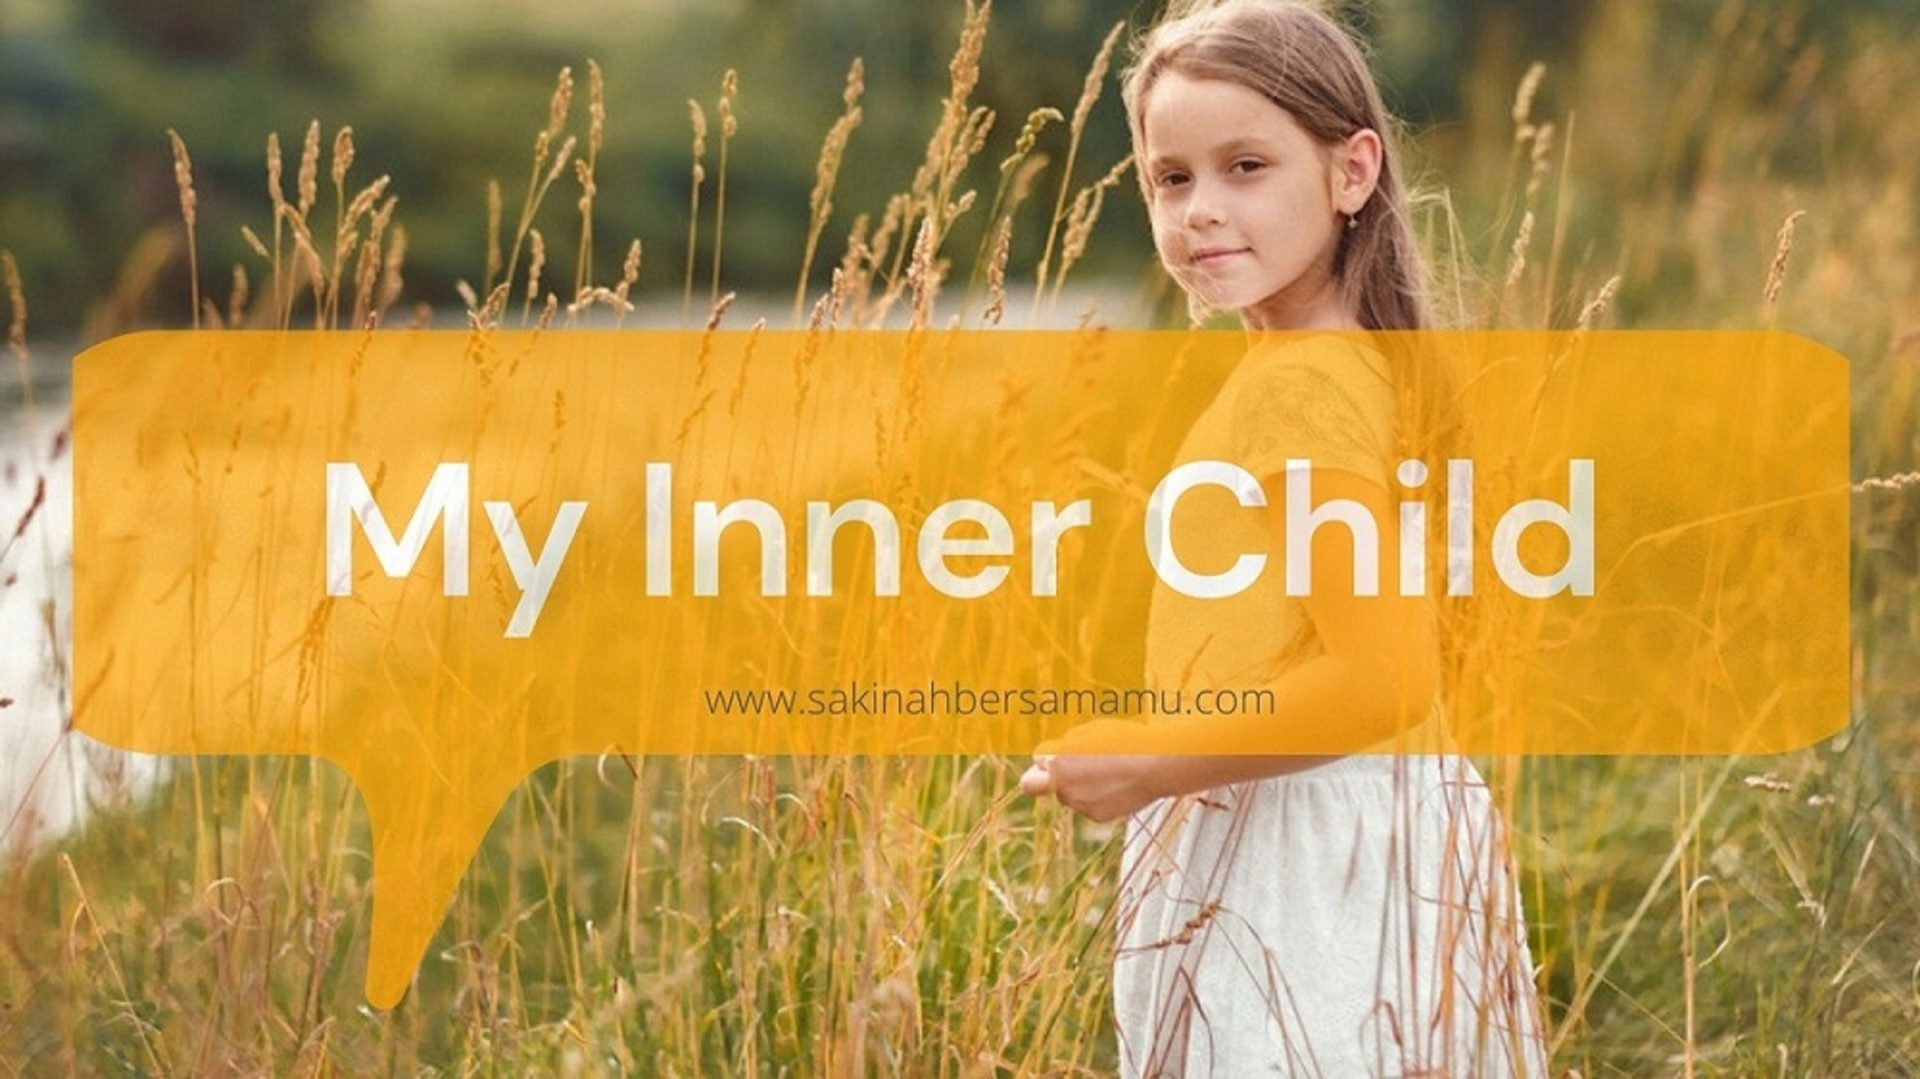 jurnal inner child, penelitian inner child, innder child adalah, referensi inner child, gambar inner child, foto inner child